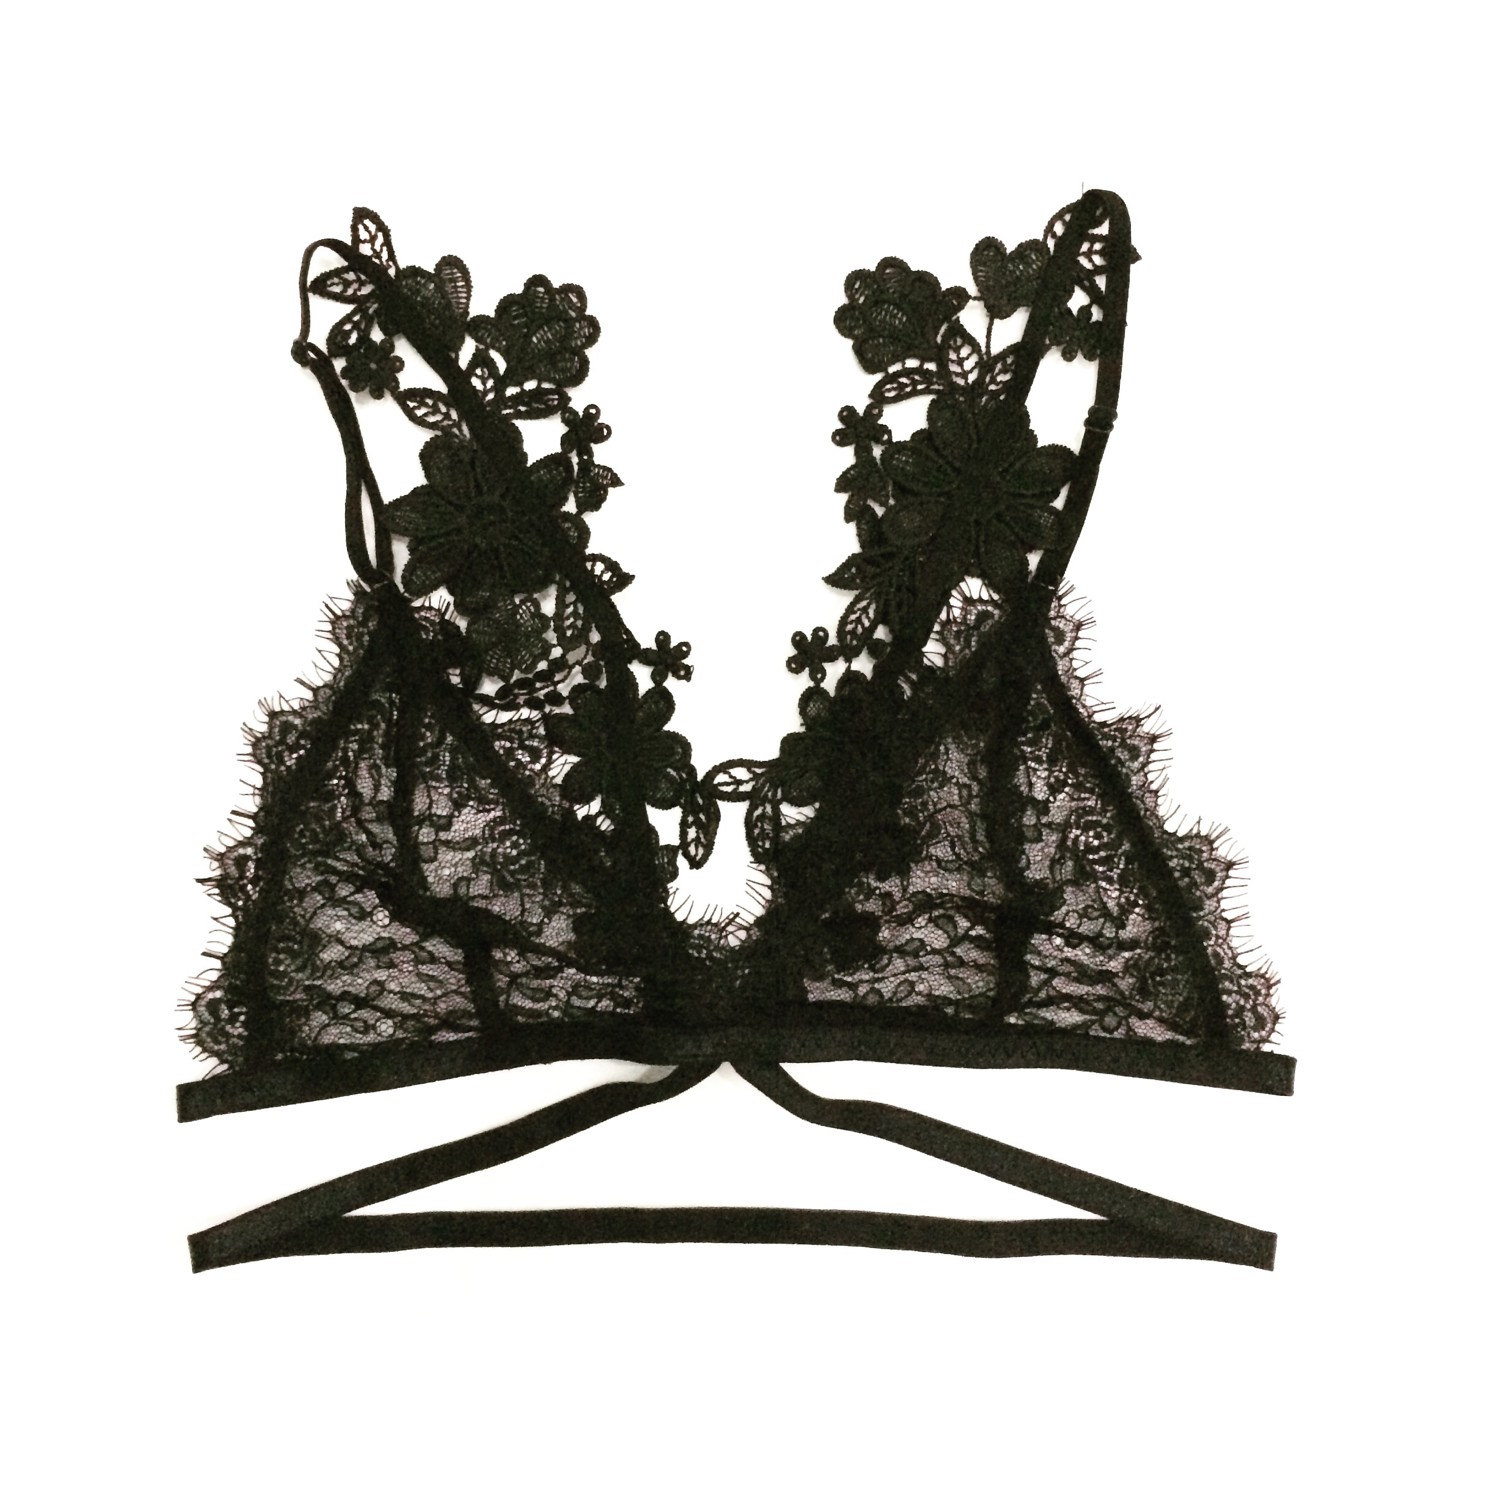 SPECIAL PROMOTION 30% discount - Bralette, lace bra, back applique, handmade bralet, sexy lingerie - Butterfly